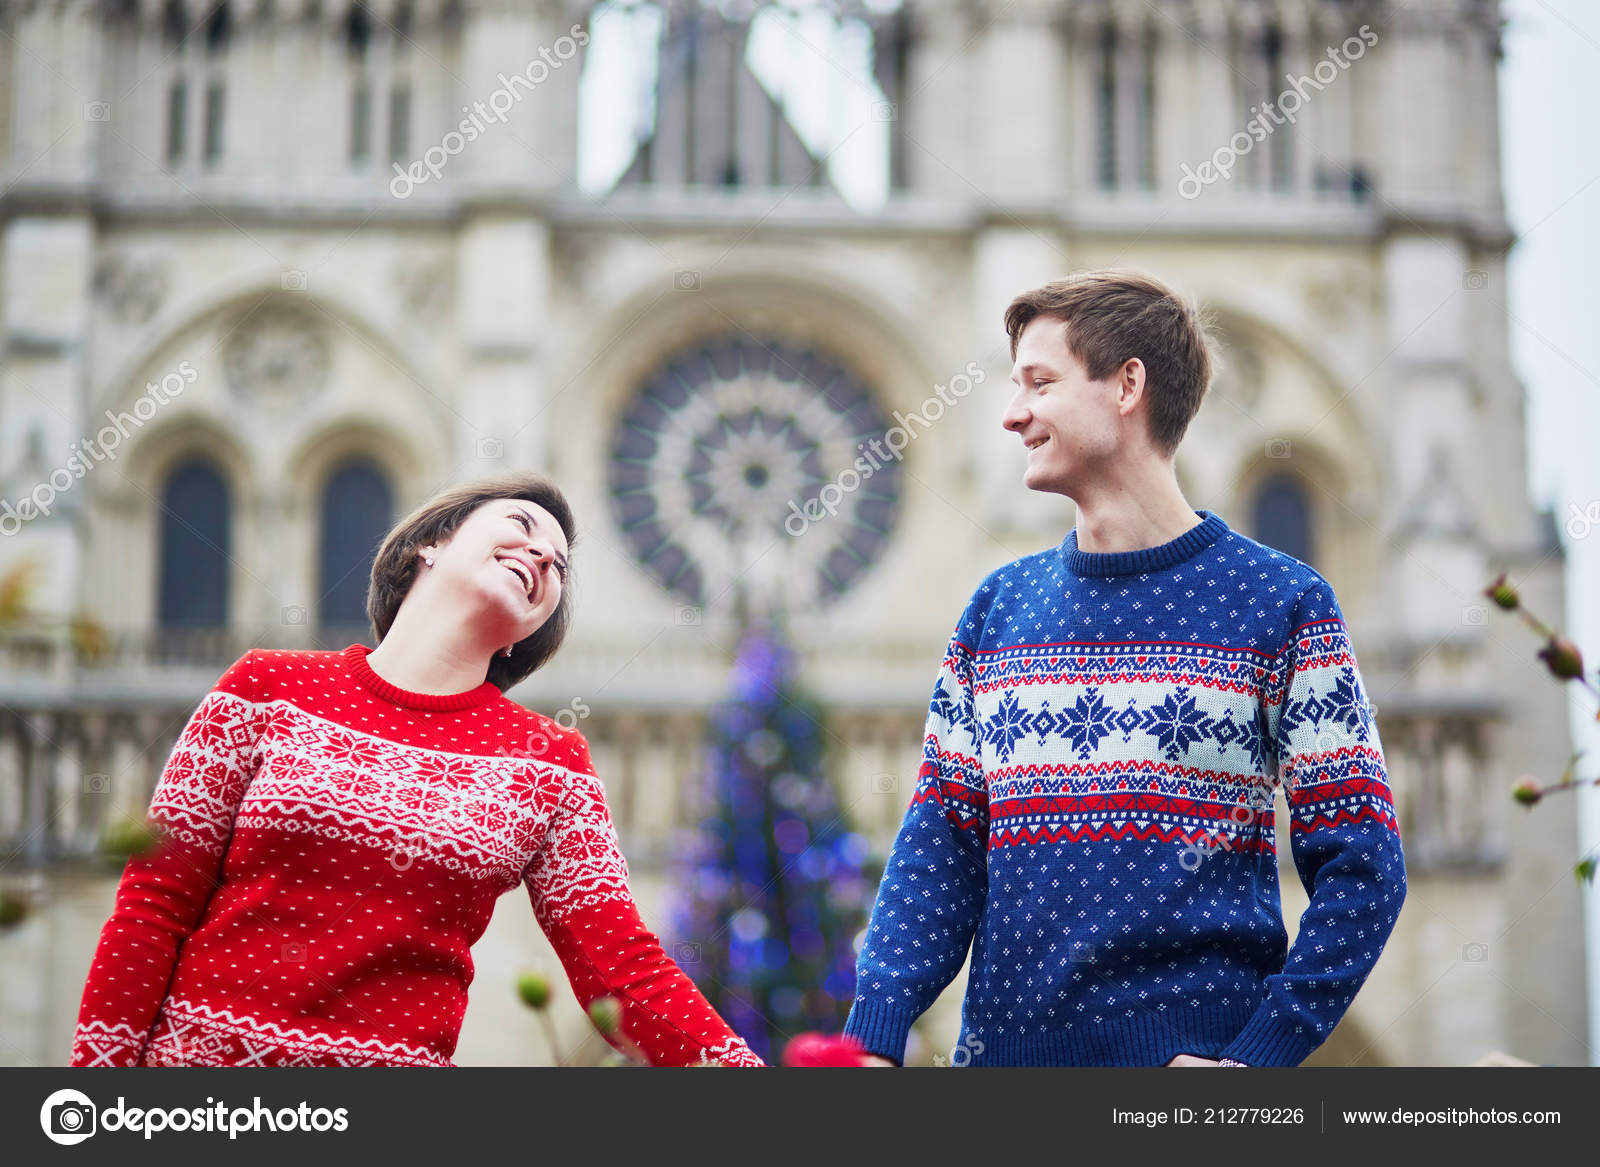 Happy Couple Colorful Sweaters Street Paris Decorated Christmas ...